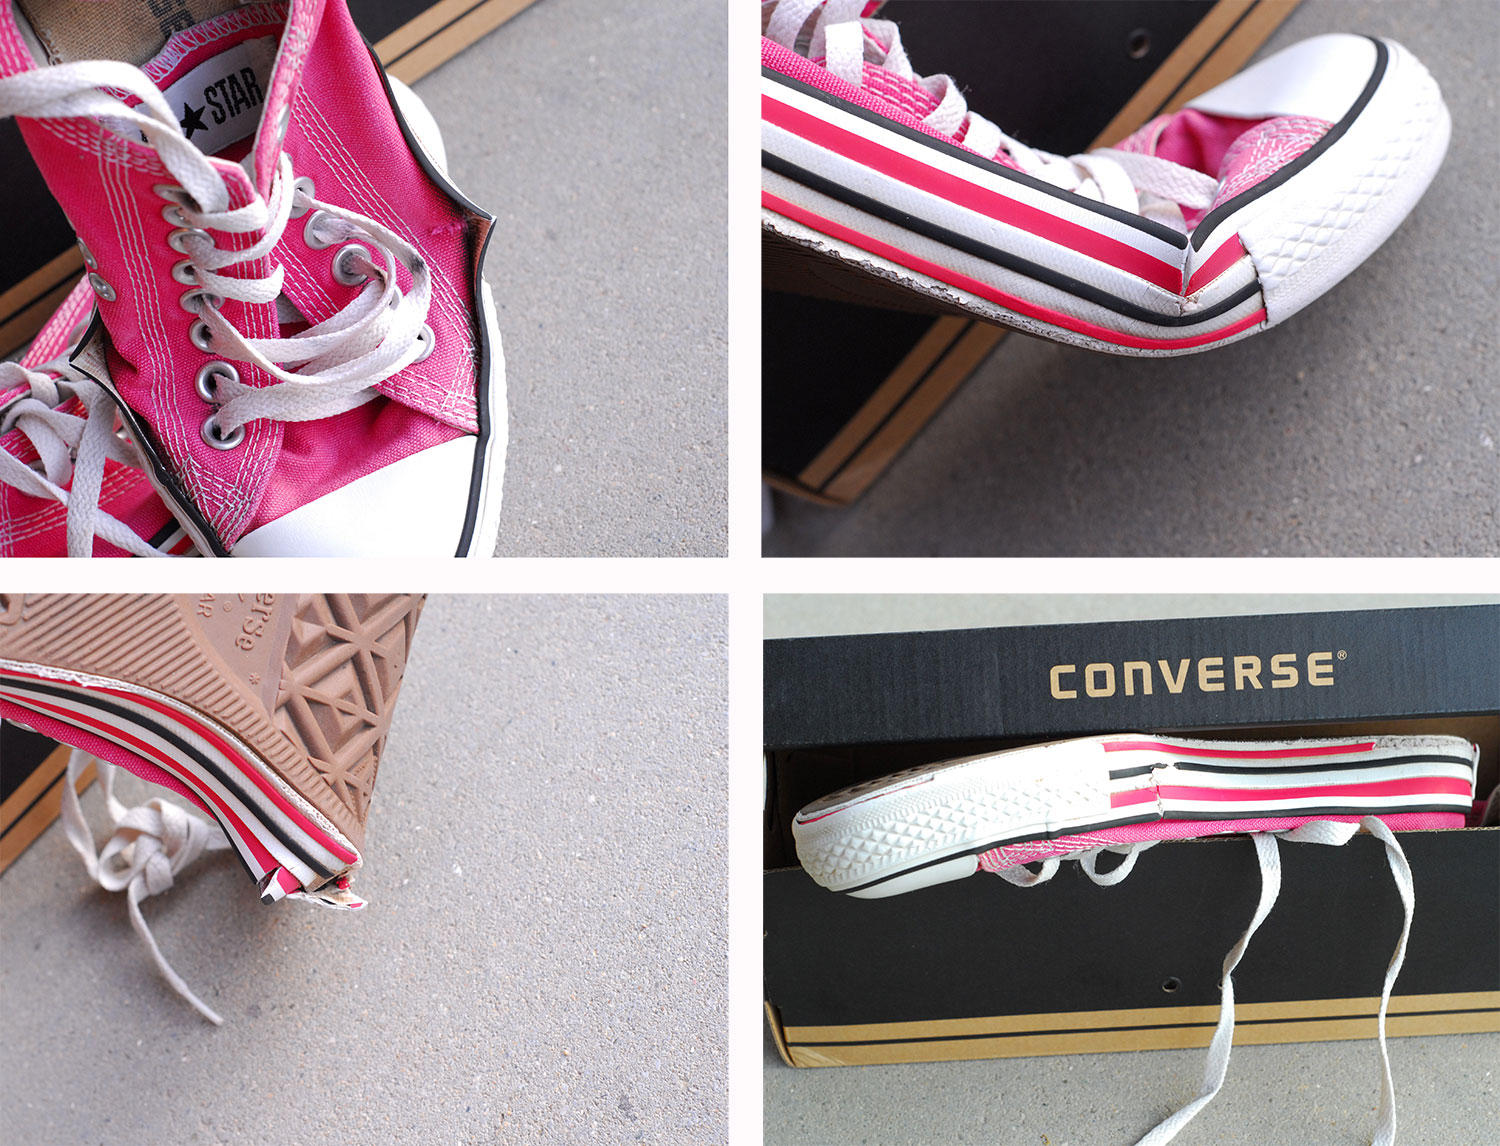 aa57adca43a7 Converse sneakers worn out prematurely - StyleFrizz